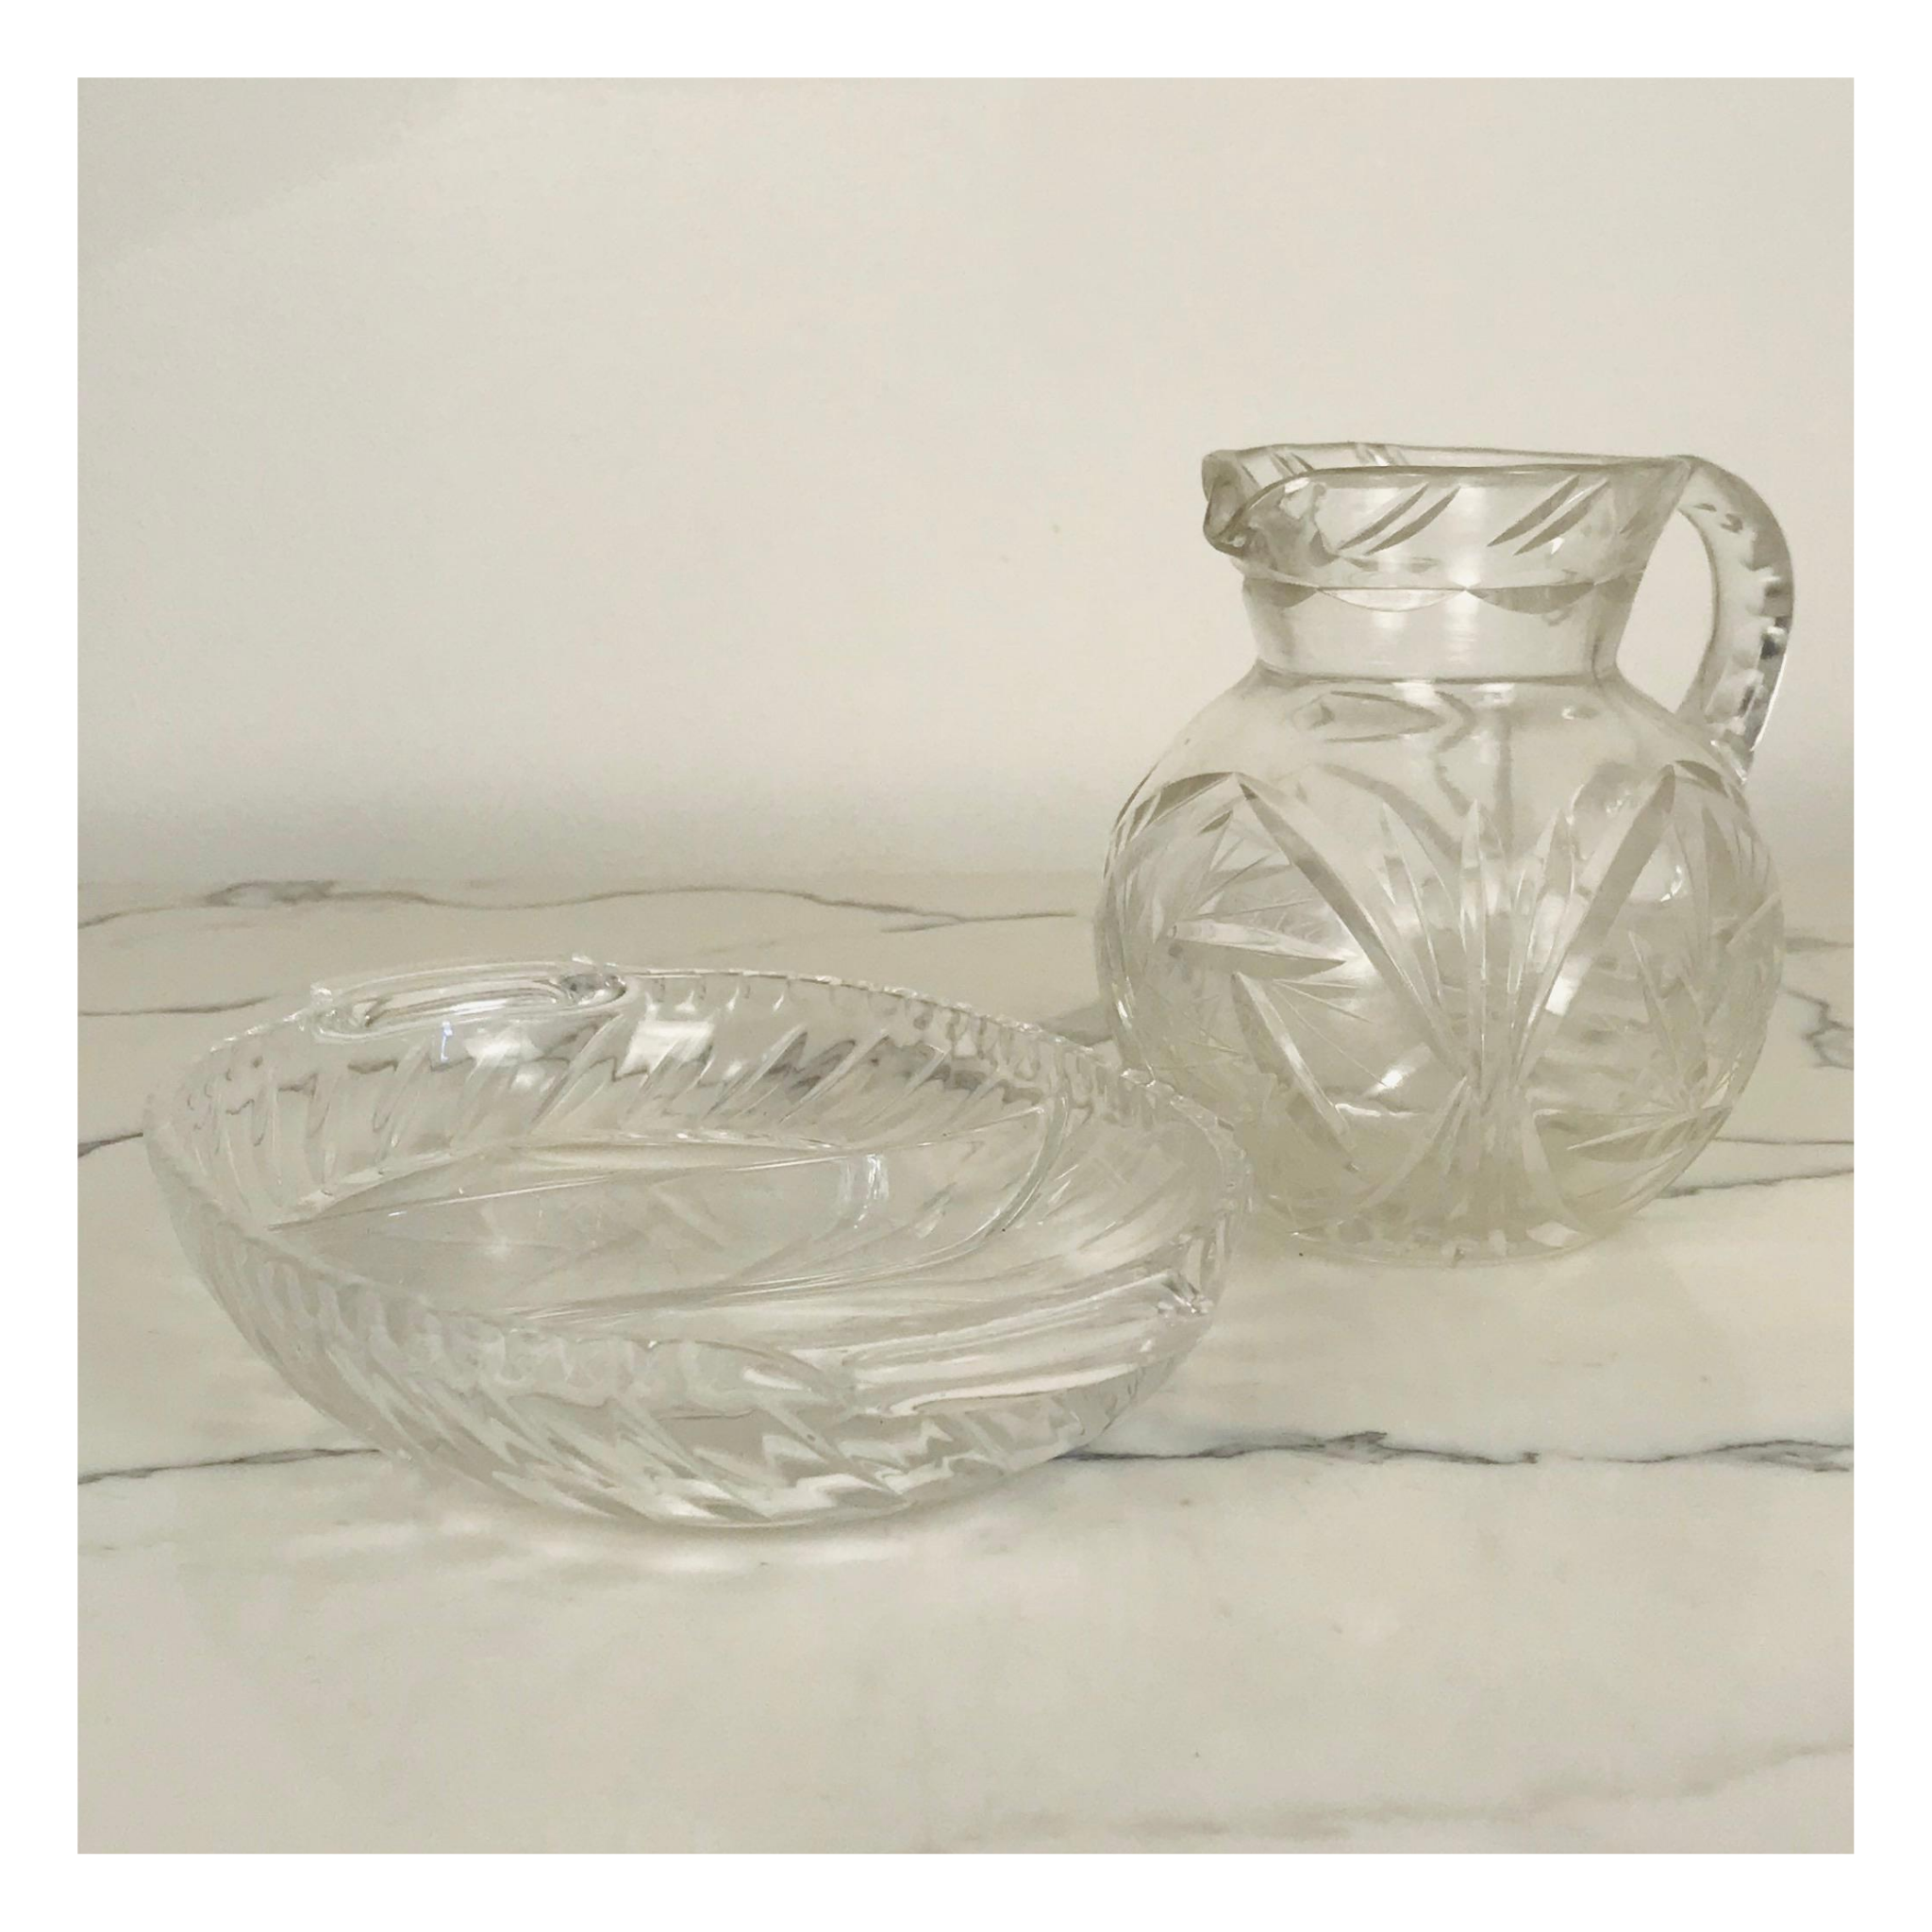 Star Pinwheel Crystal Serving Dish and Pitcher